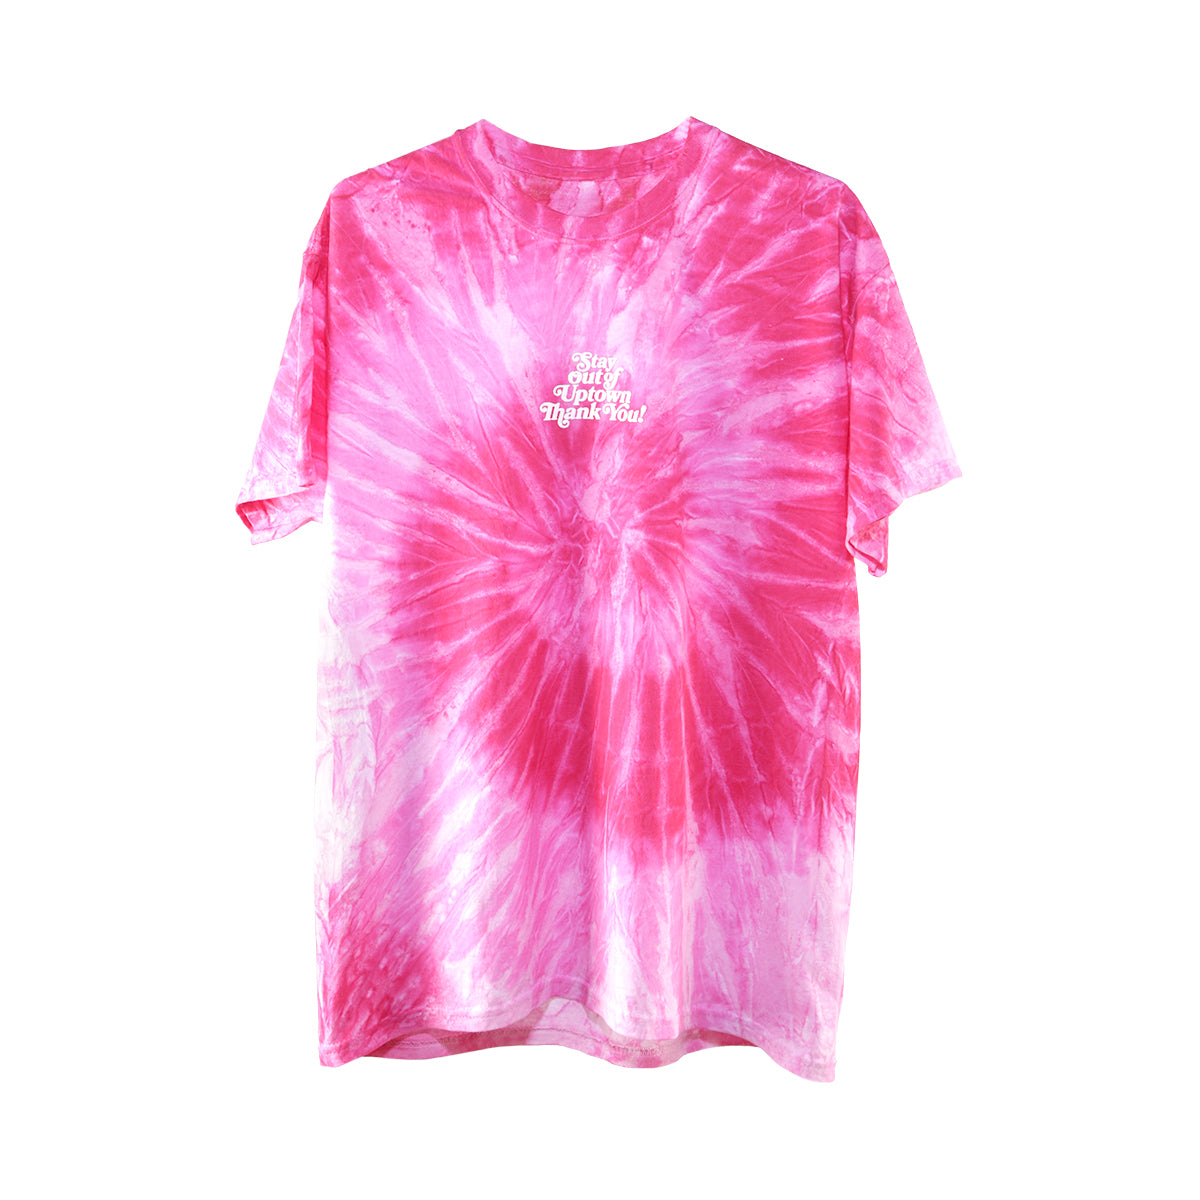 Stay Out of Uptown Tie Dye - Spiral Pink